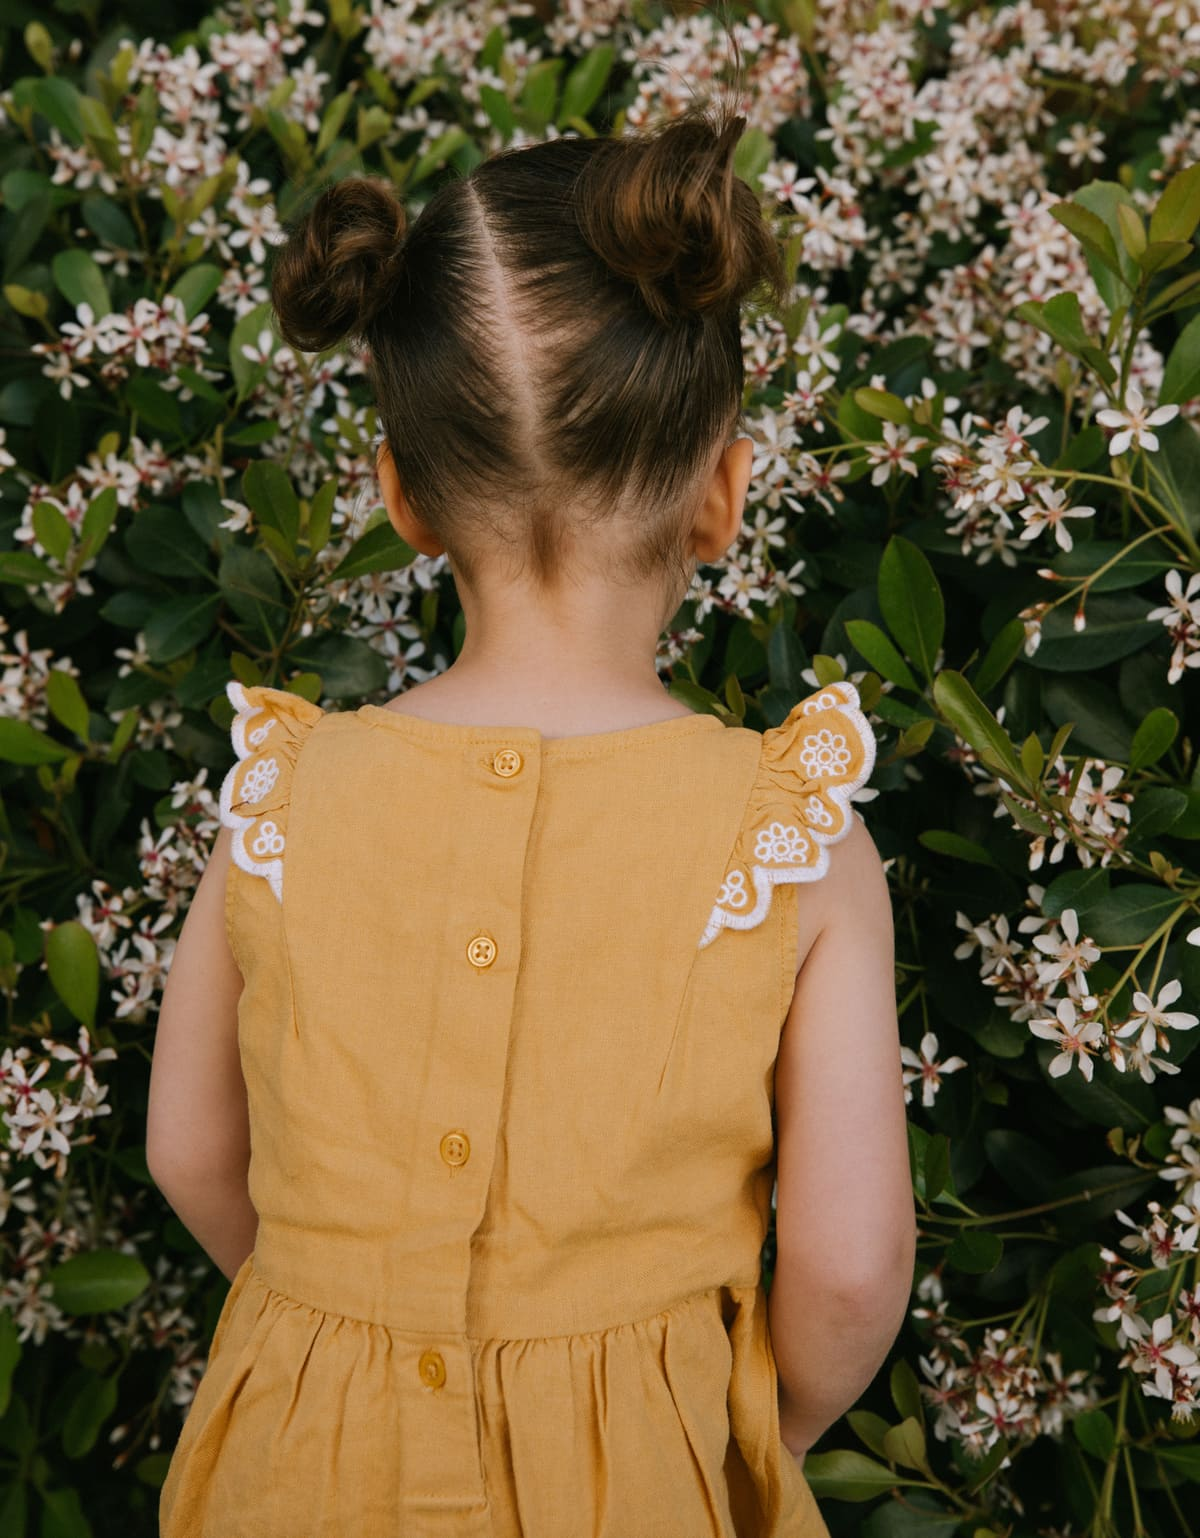 yellow dress for toddlers from carter's